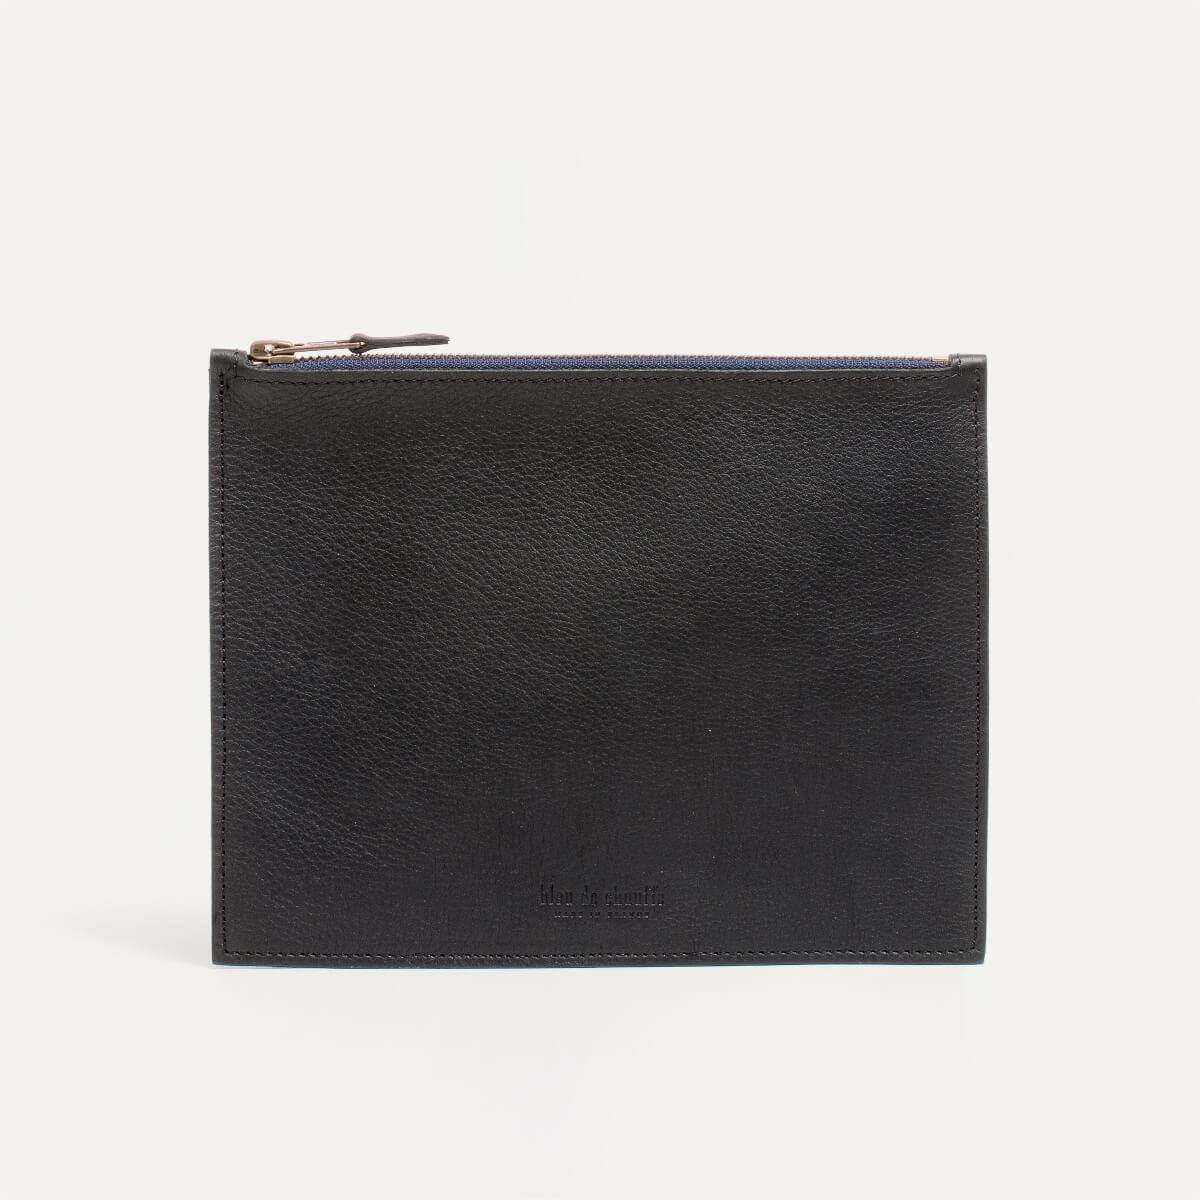 Leather Pouch COSMO M - Black (image n°2)